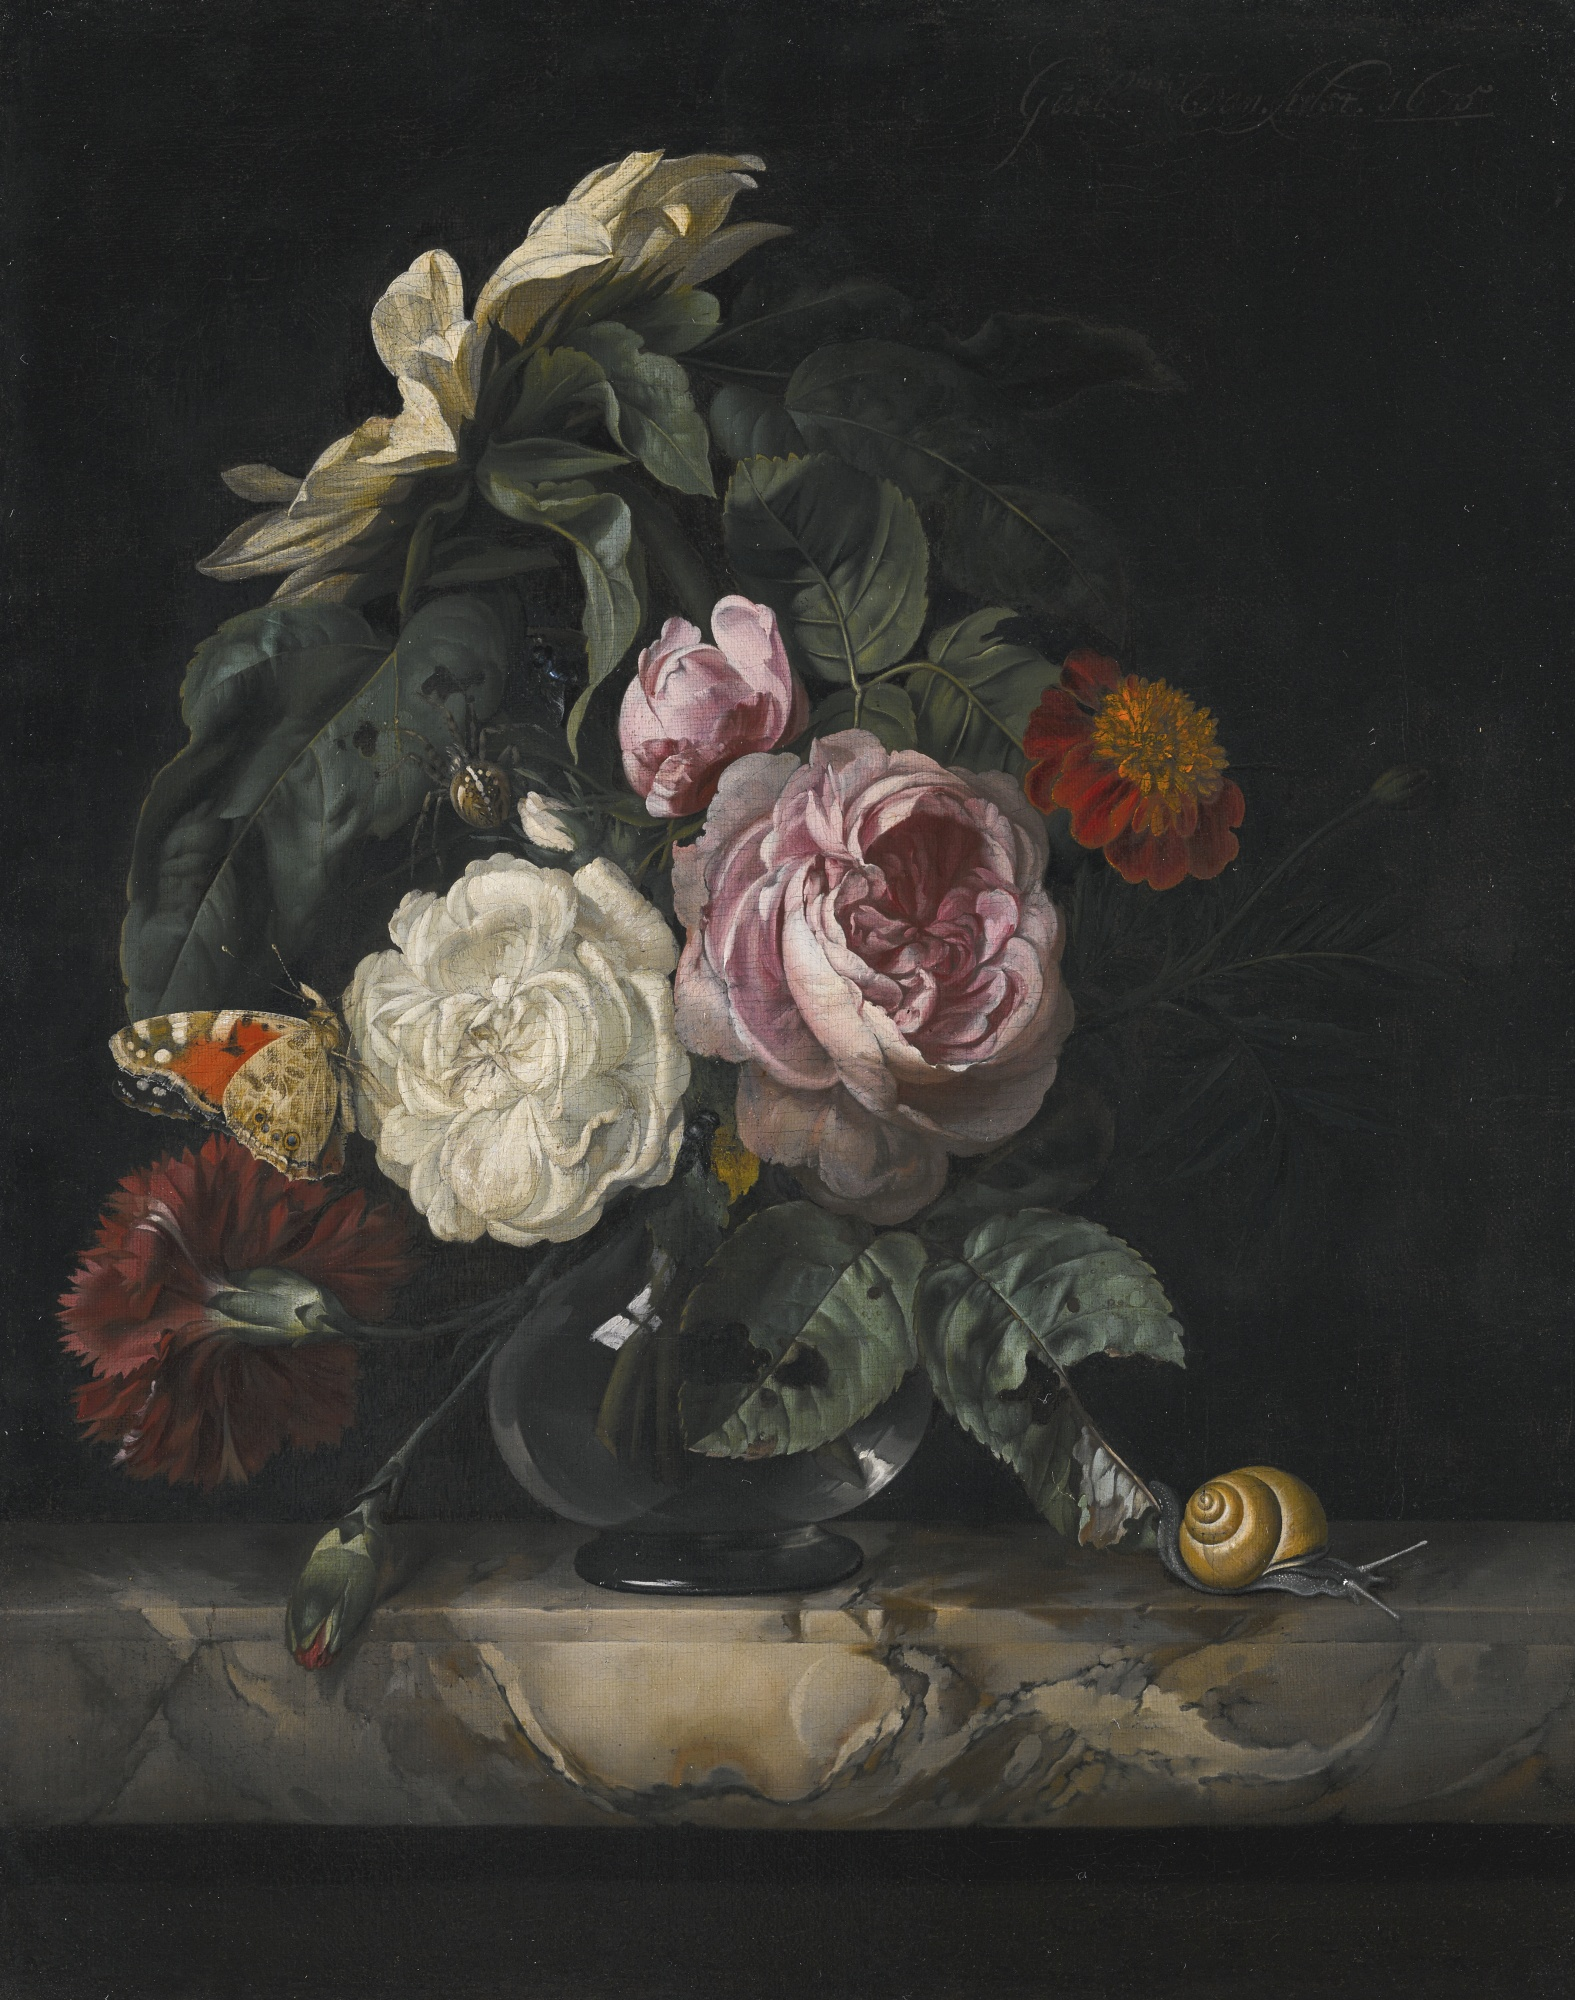 Still Life of Roses, a Carnation and a Sunflower in a Glass Vase, by Willem van Aelst, 1675